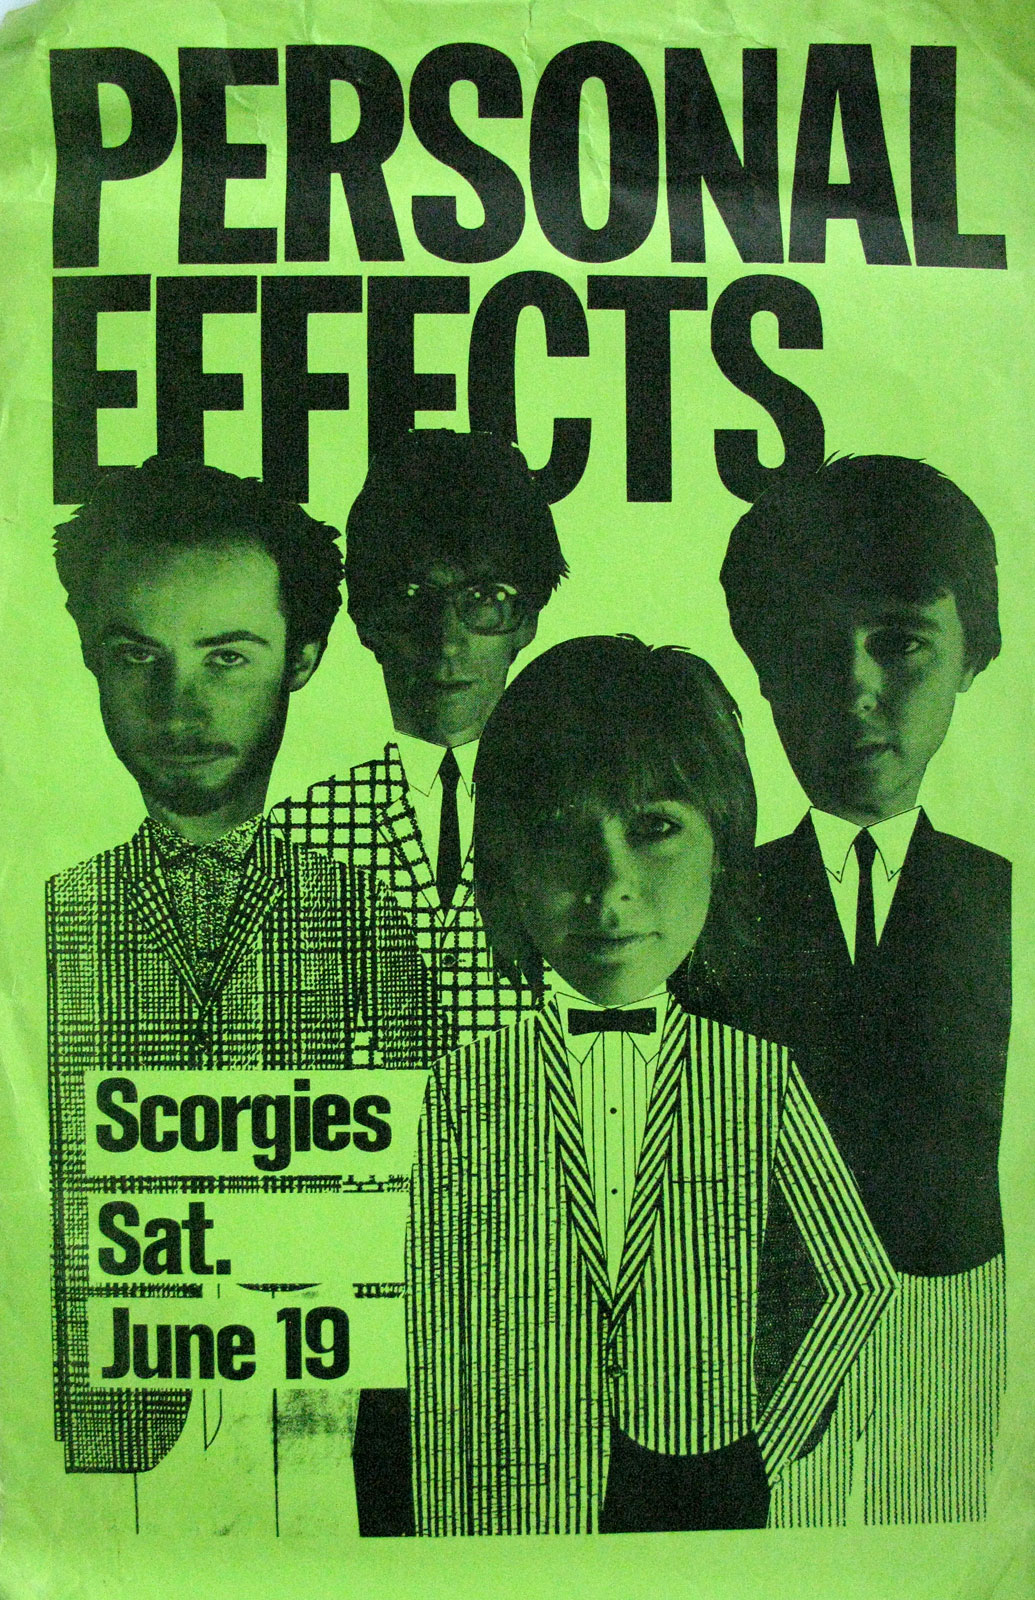 Poster for Personal Effects at Scorgies in Rochester, New York 06.19.1982